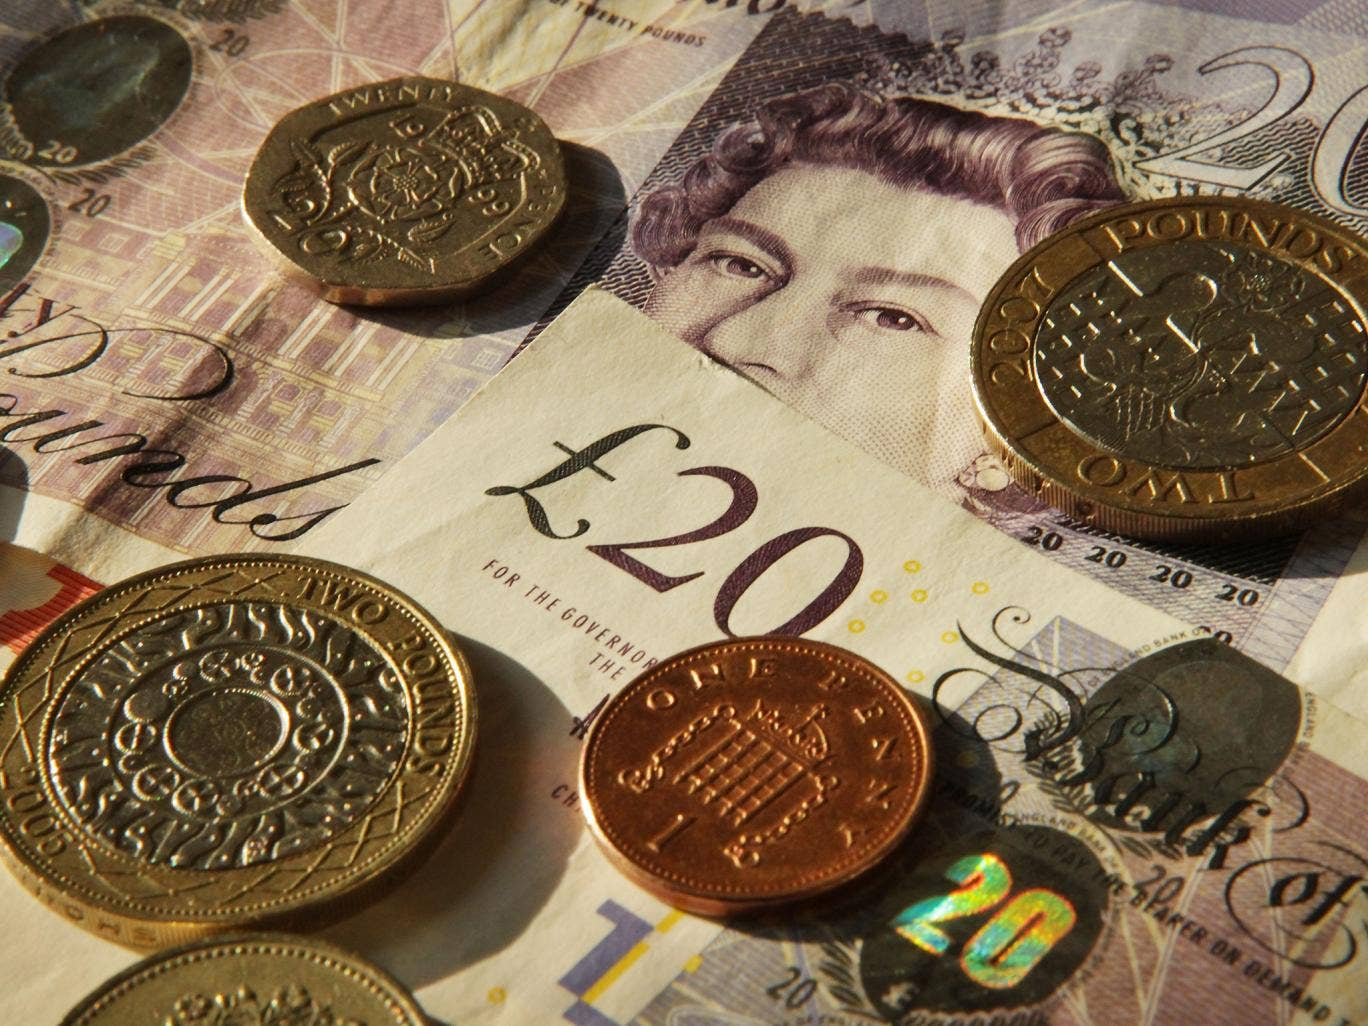 The economy expanded by 0.8 per cent in the second quarter of 2014